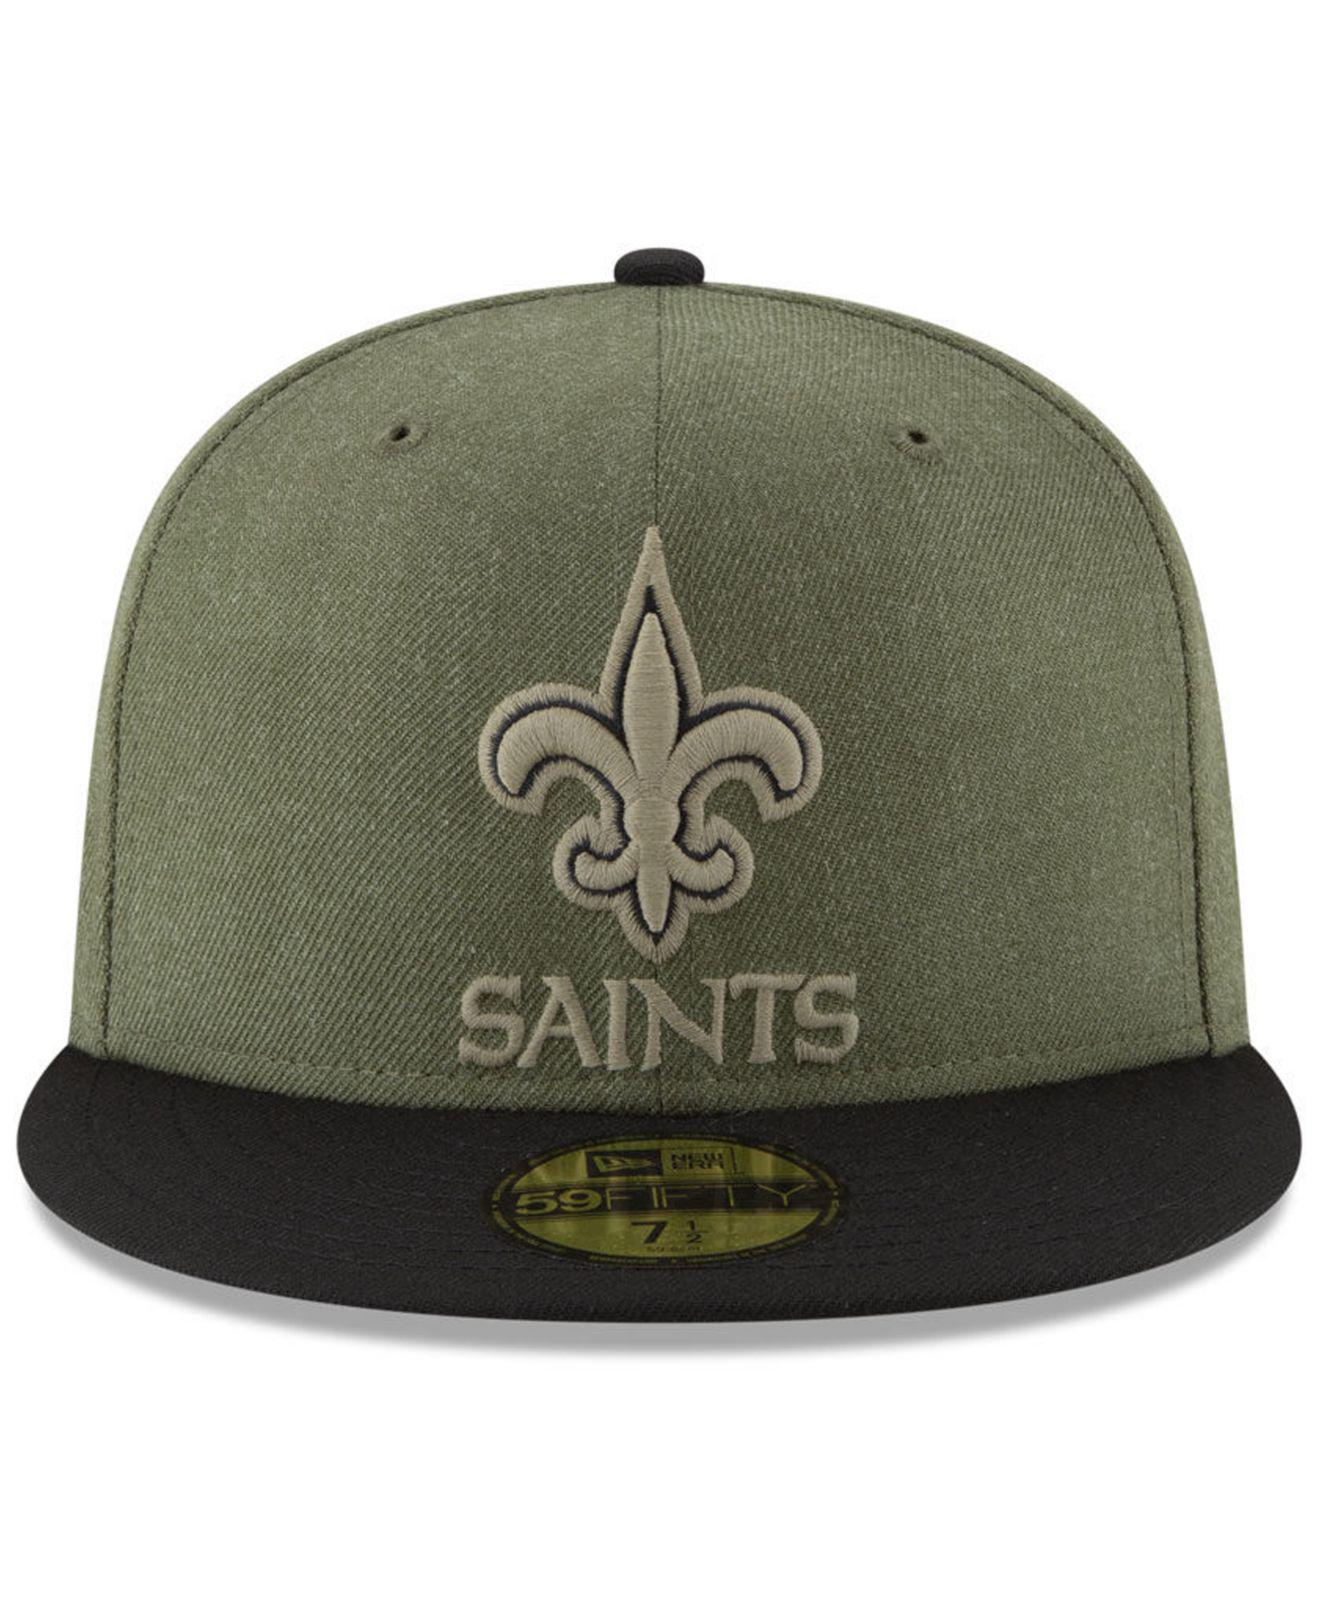 df7e6292d8a Lyst - KTZ New Orleans Saints Salute To Service 59fifty Fitted Cap in Green  for Men